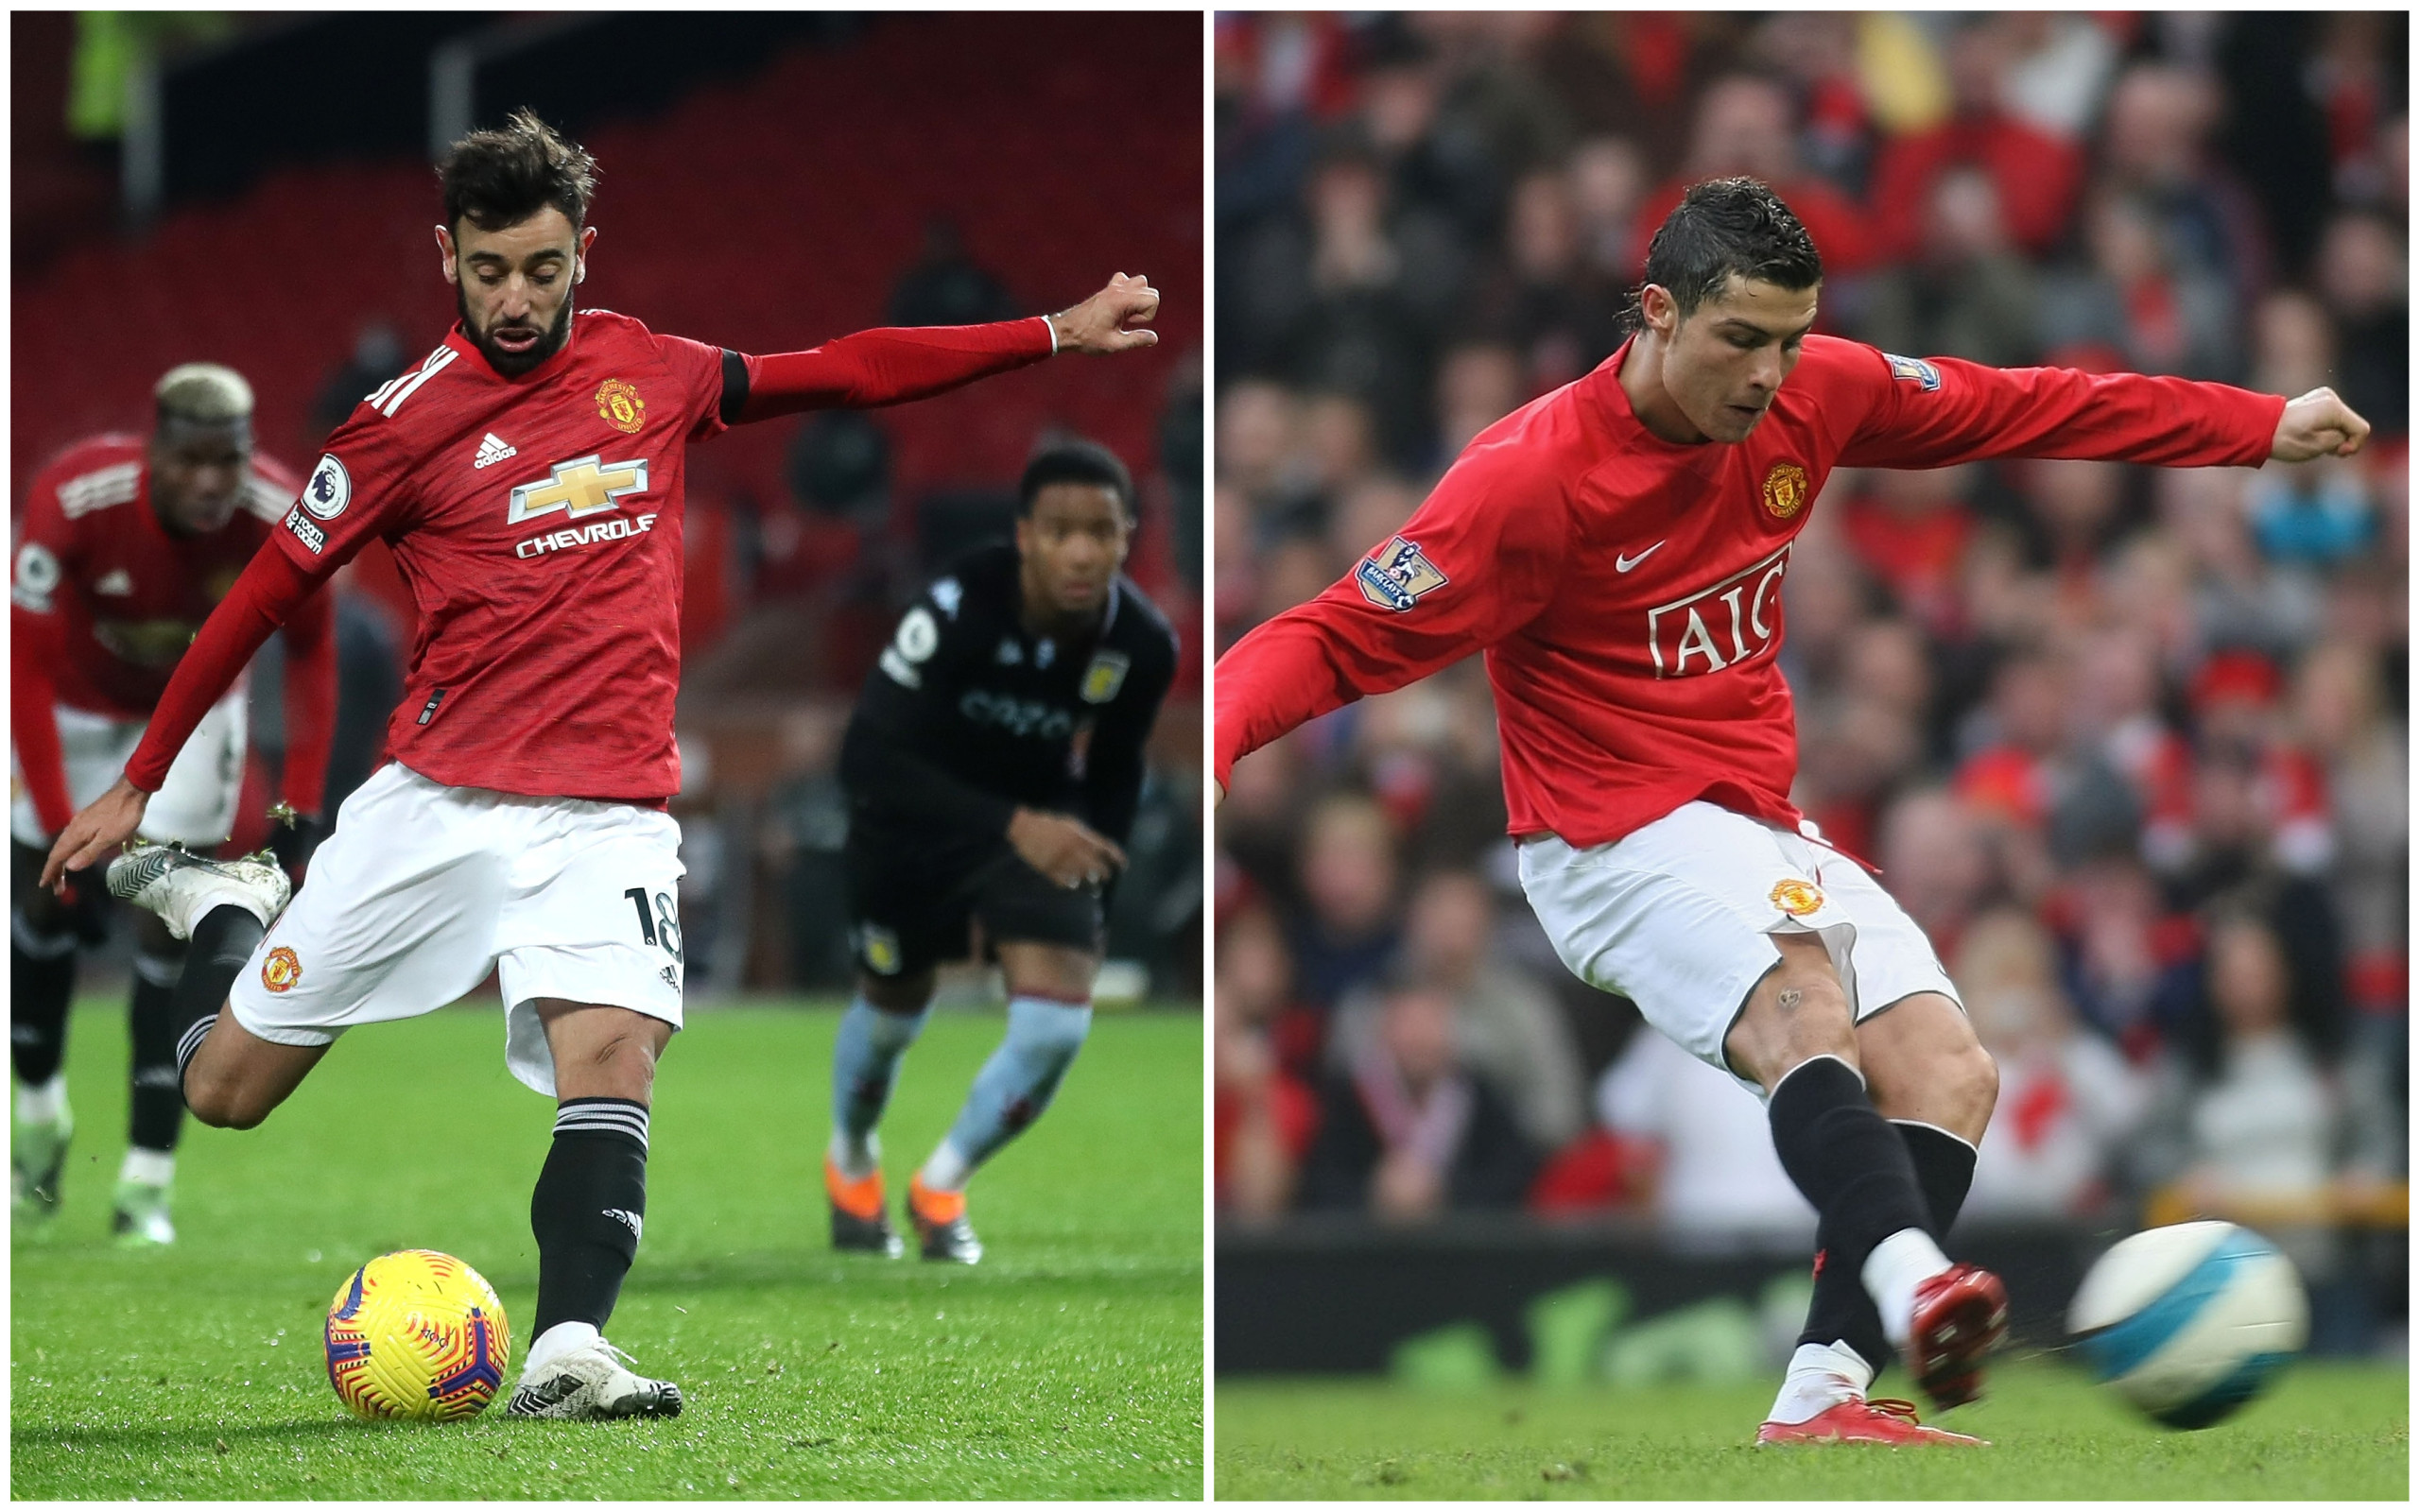 Ole Gunnar Solskjaer reveals conversation with Bruno Fernandes and Cristiano Ronaldo over penalty duty